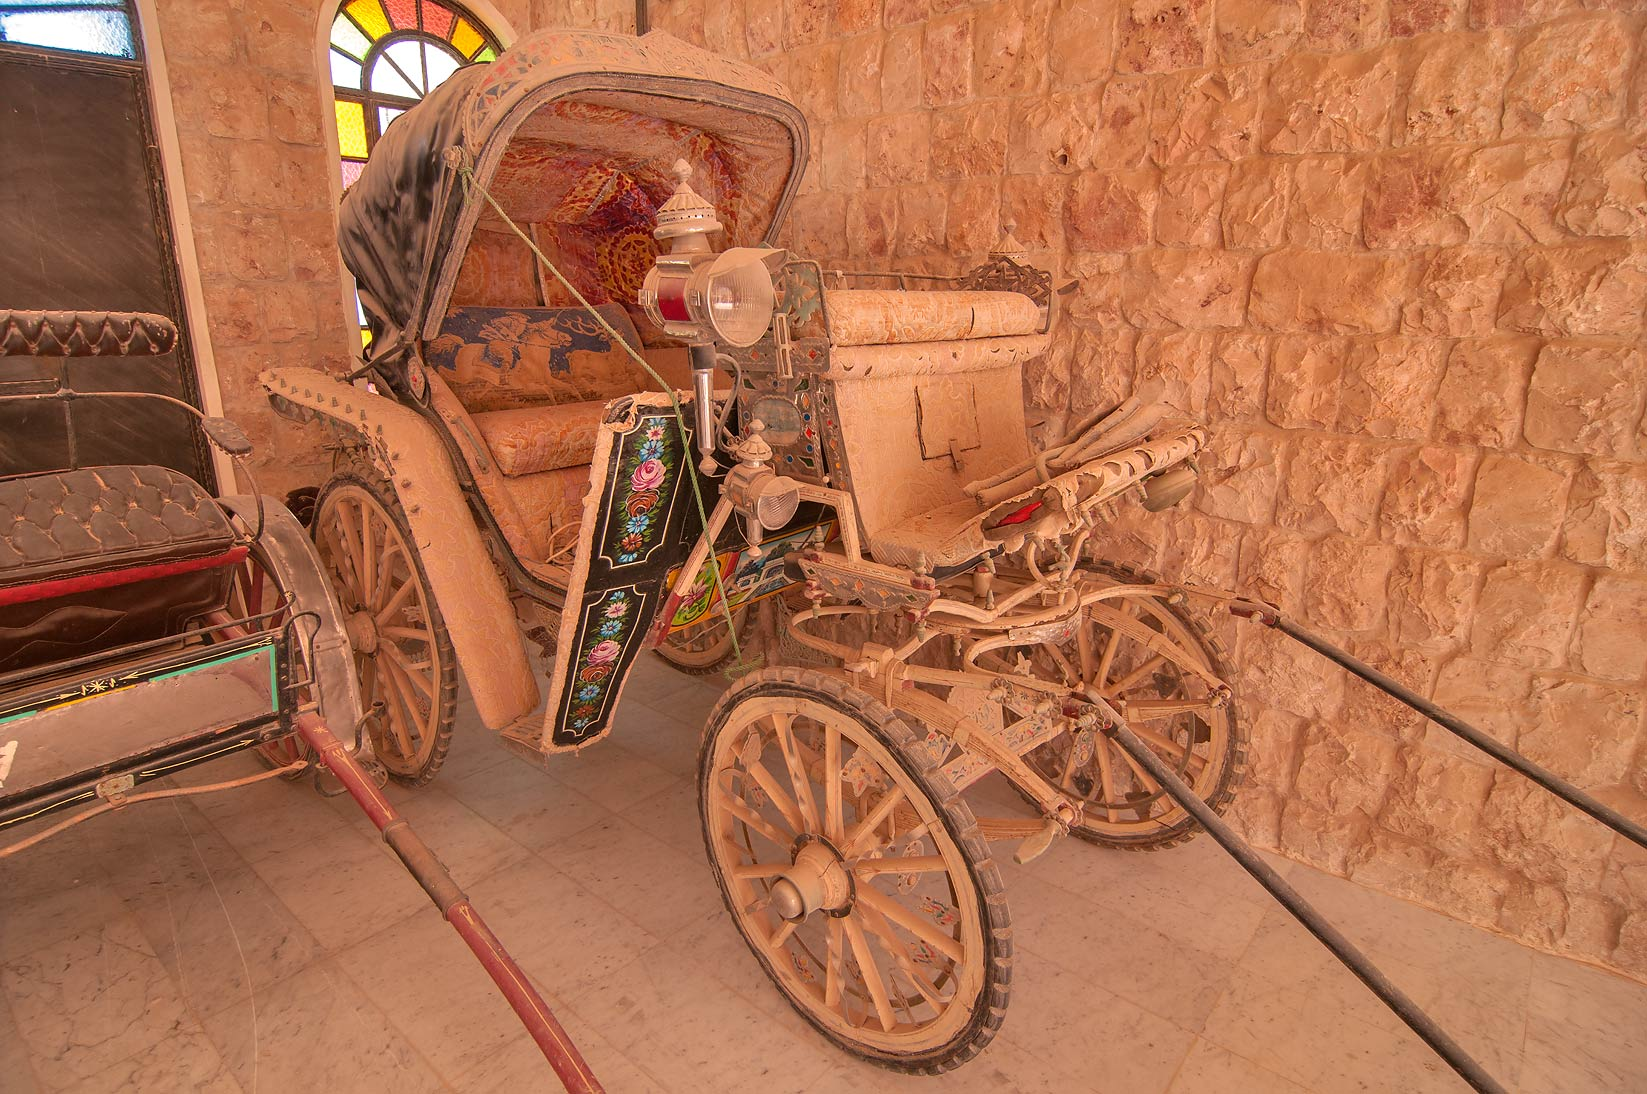 Dusty antique carriage in Sheikh Faisal Bin...Museum near Al-Shahaniya. Doha, Qatar